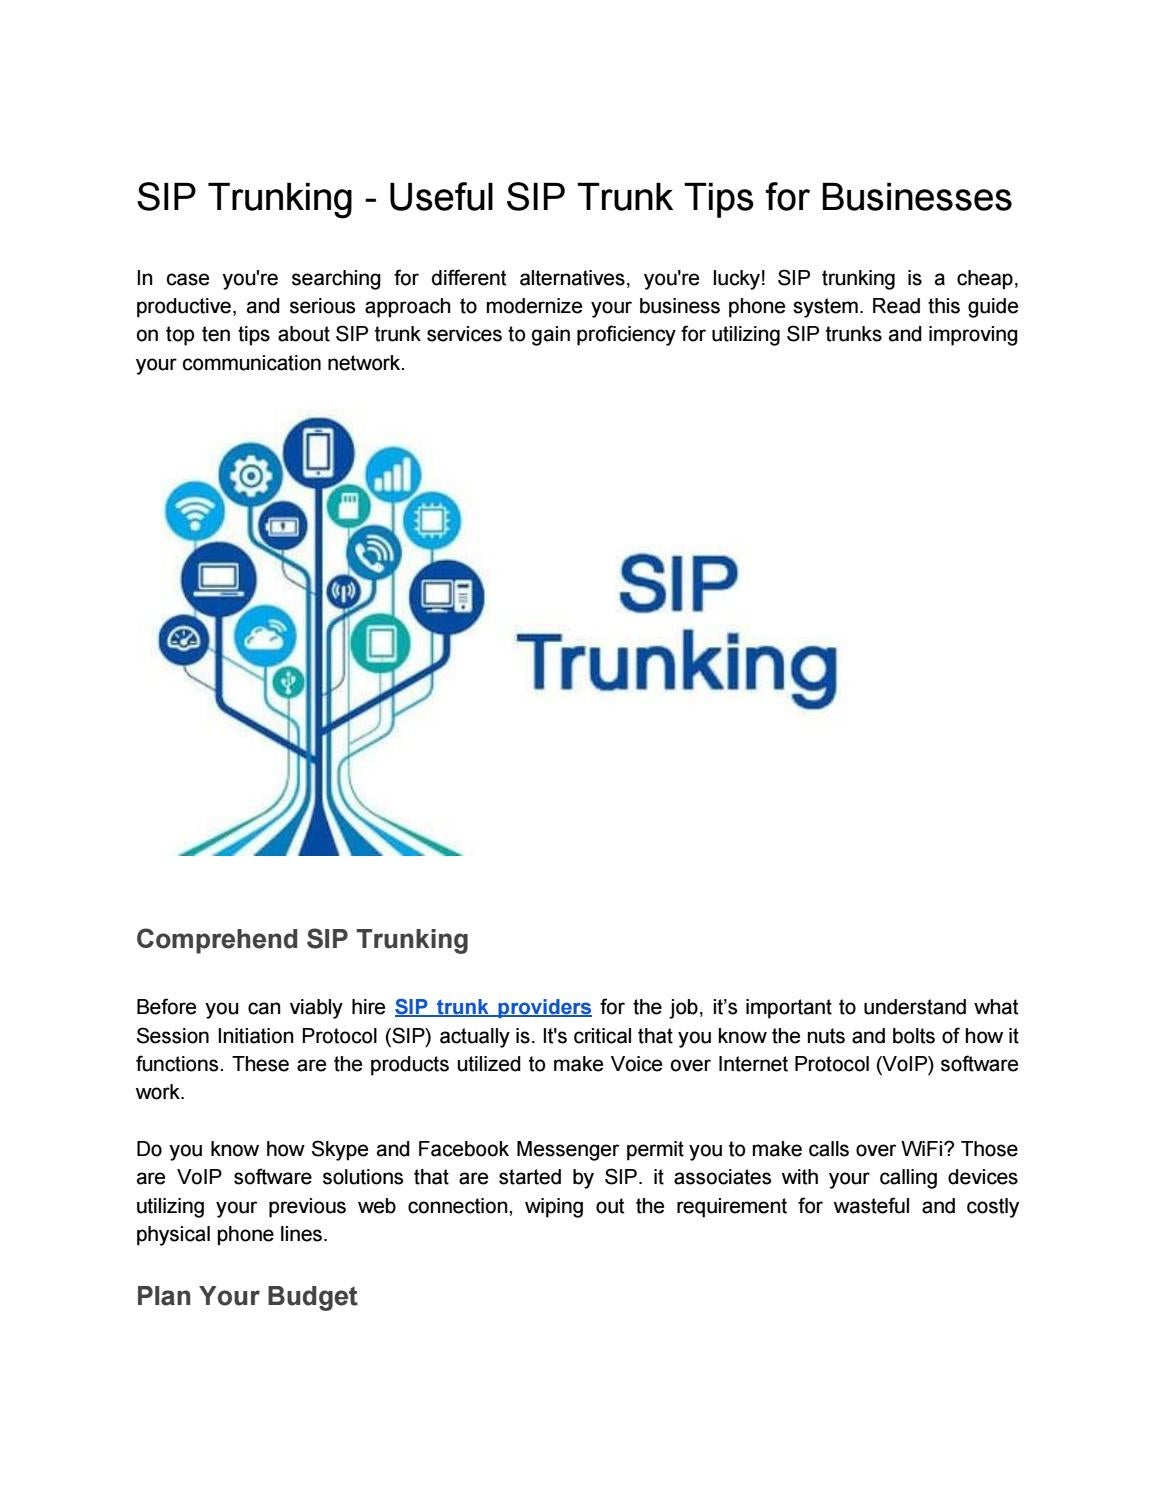 Useful SIP Trunk Tips for Businesses by Stephan James - issuu